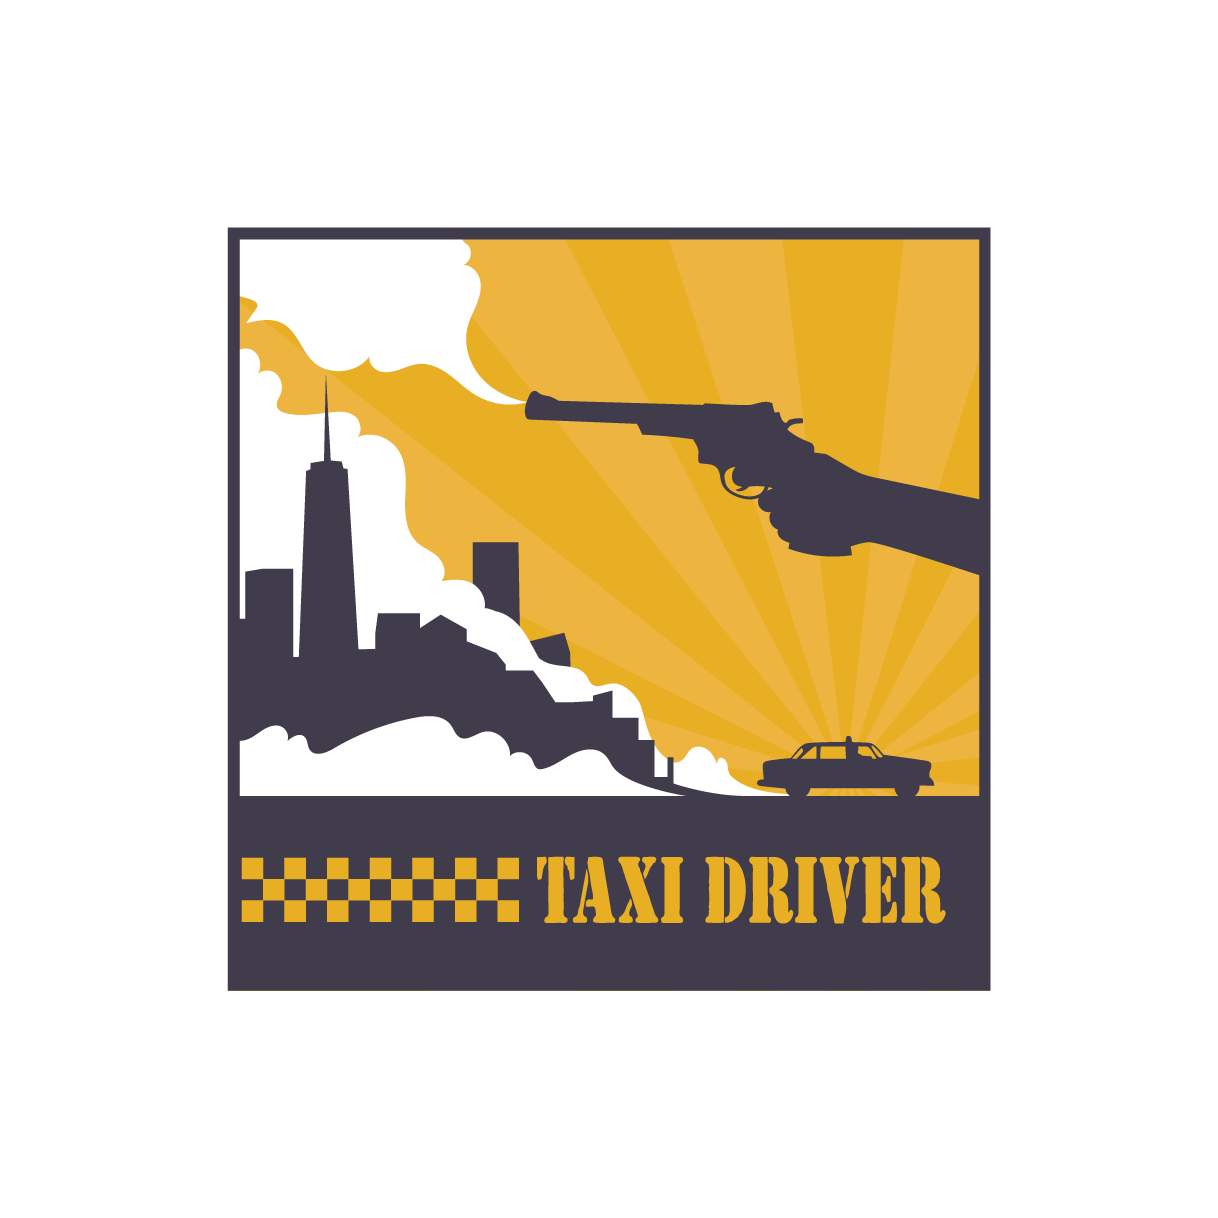 Sony Taxi Driver